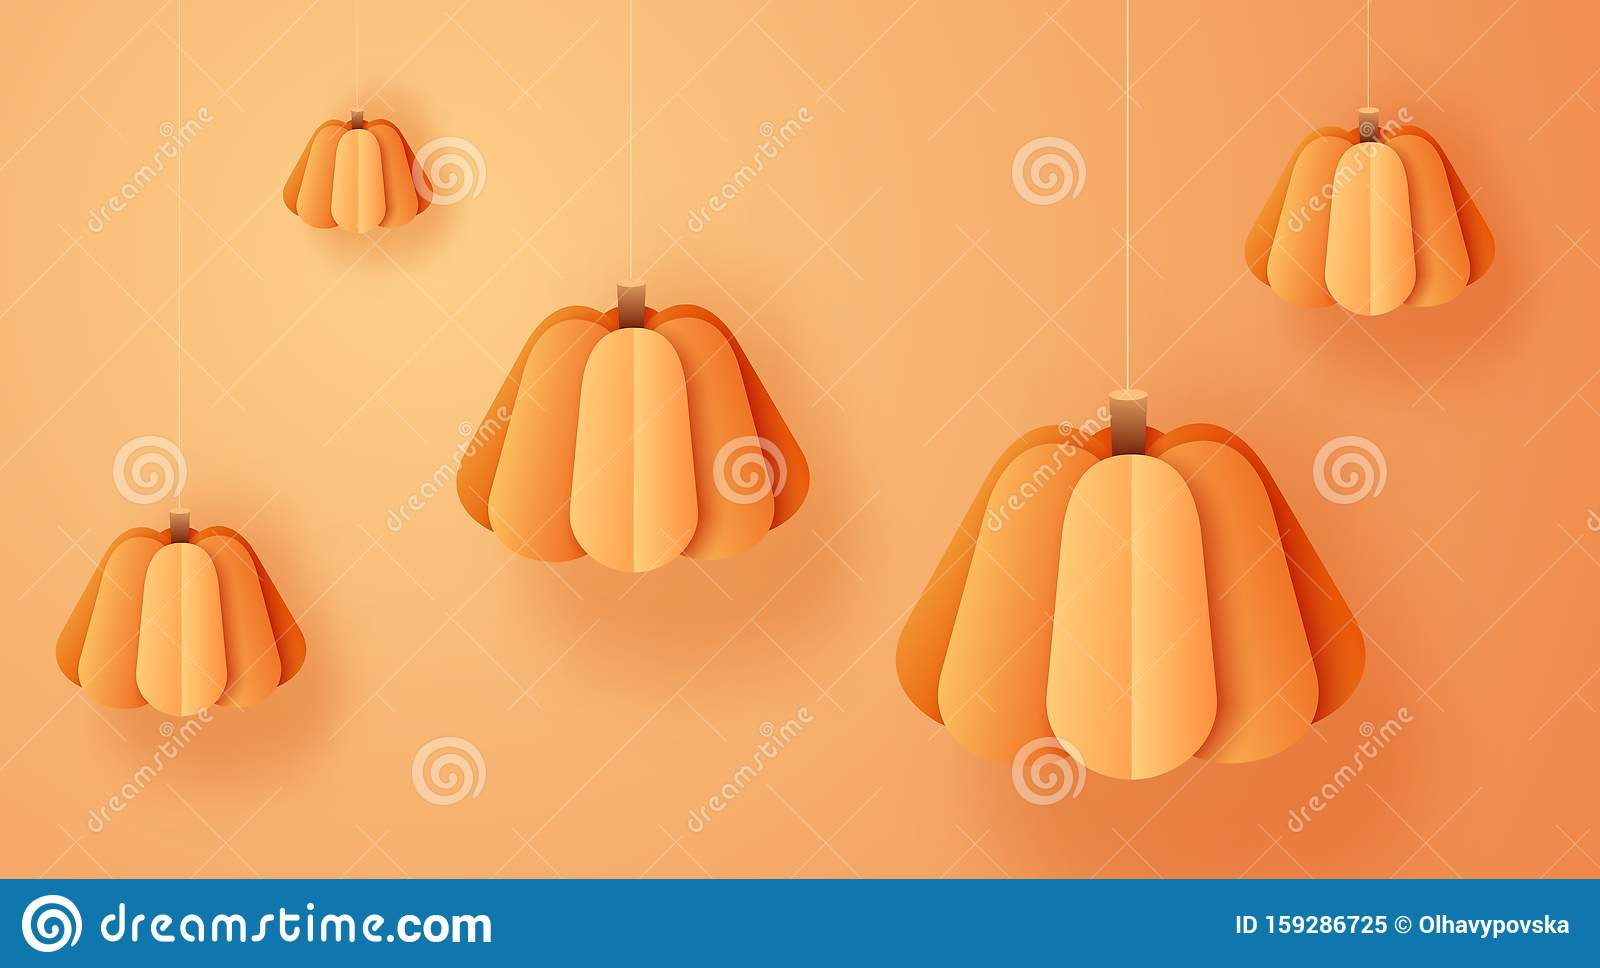 3d abstract paper cut illustration of hanging pumpkins on orange background. Thanksgiving or halloween concept in trendy